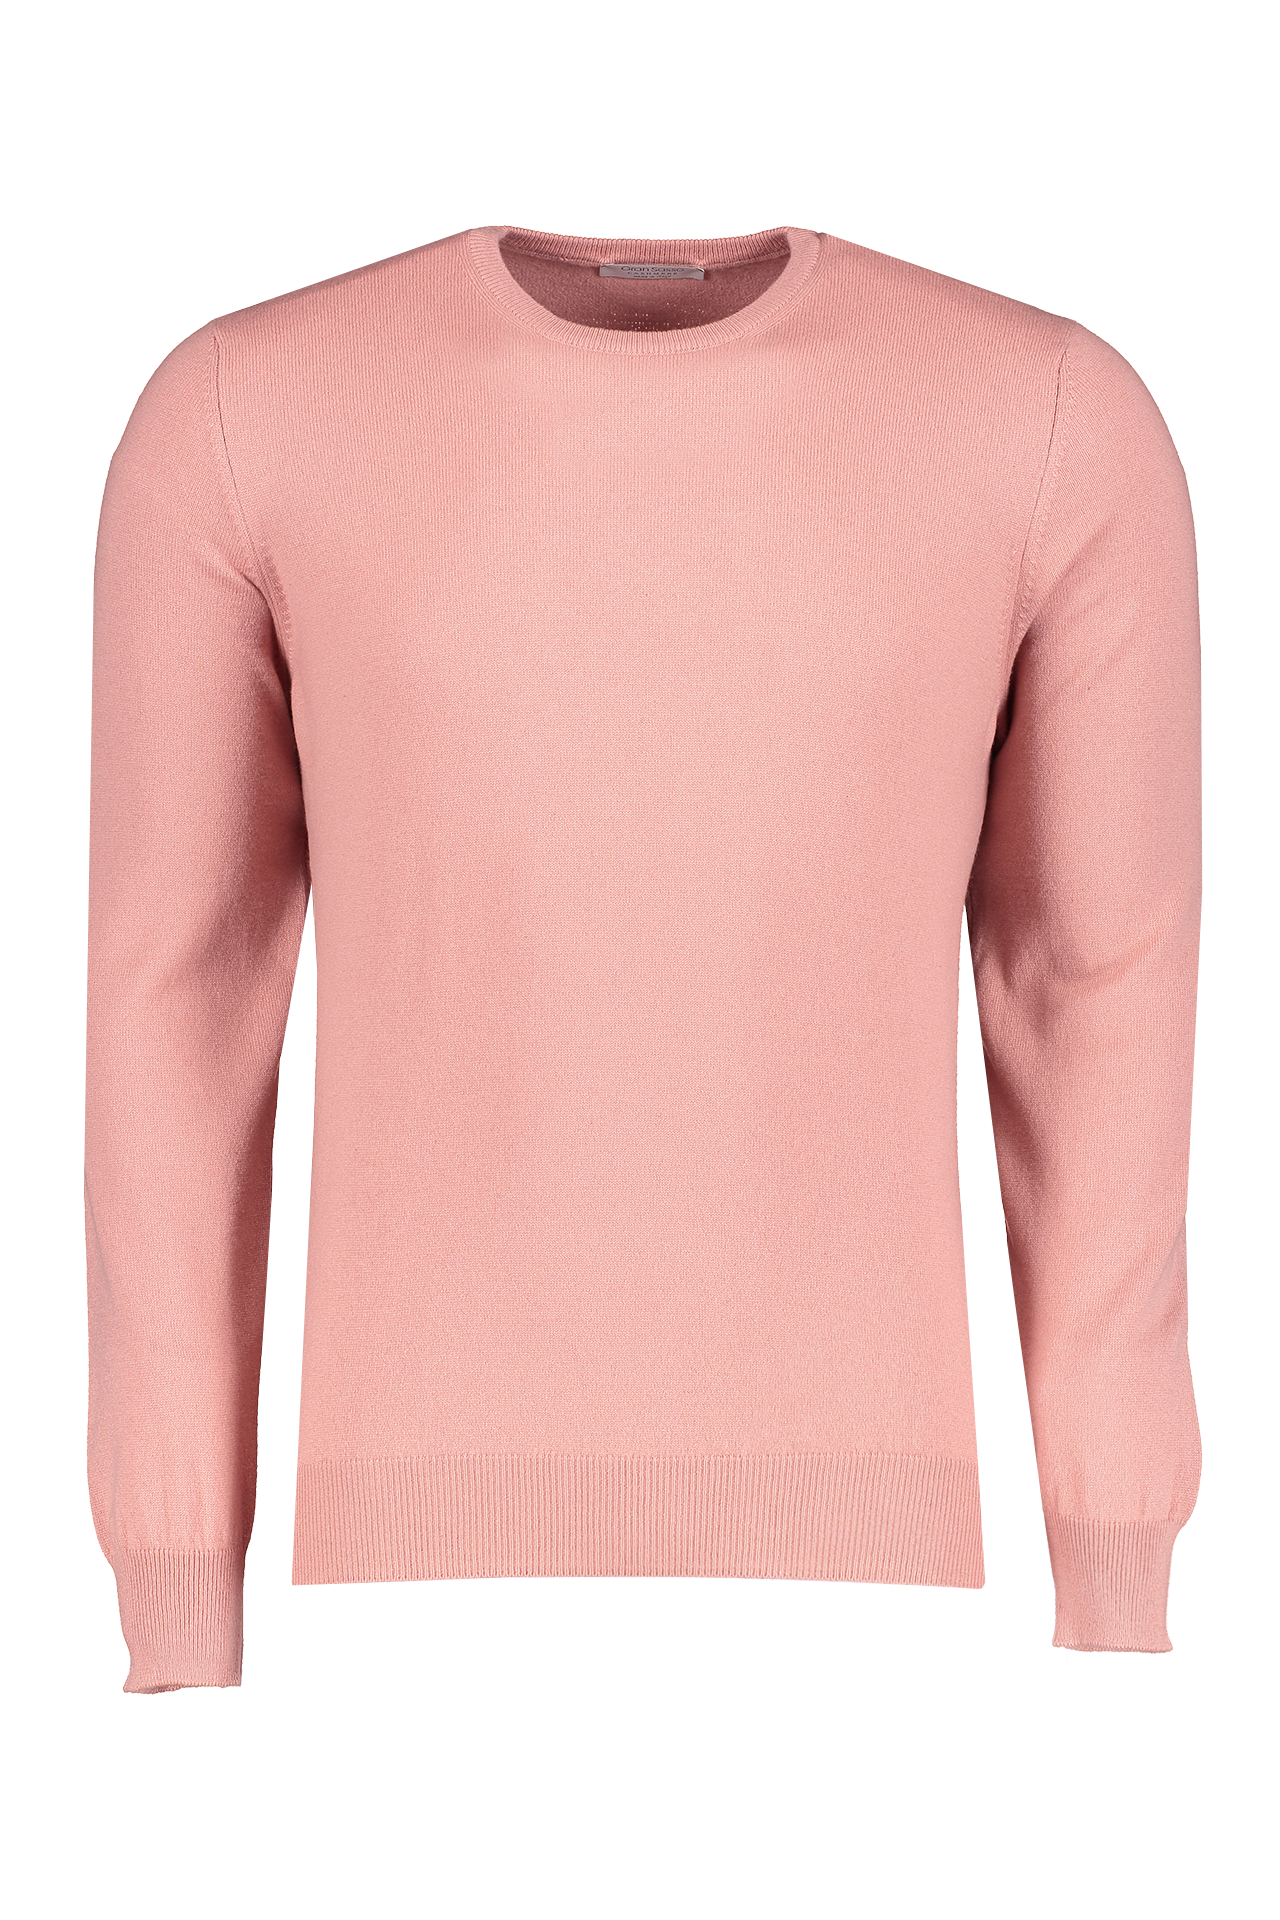 Front view image of Gran Sasso Men's Crewneck Sweater Pink